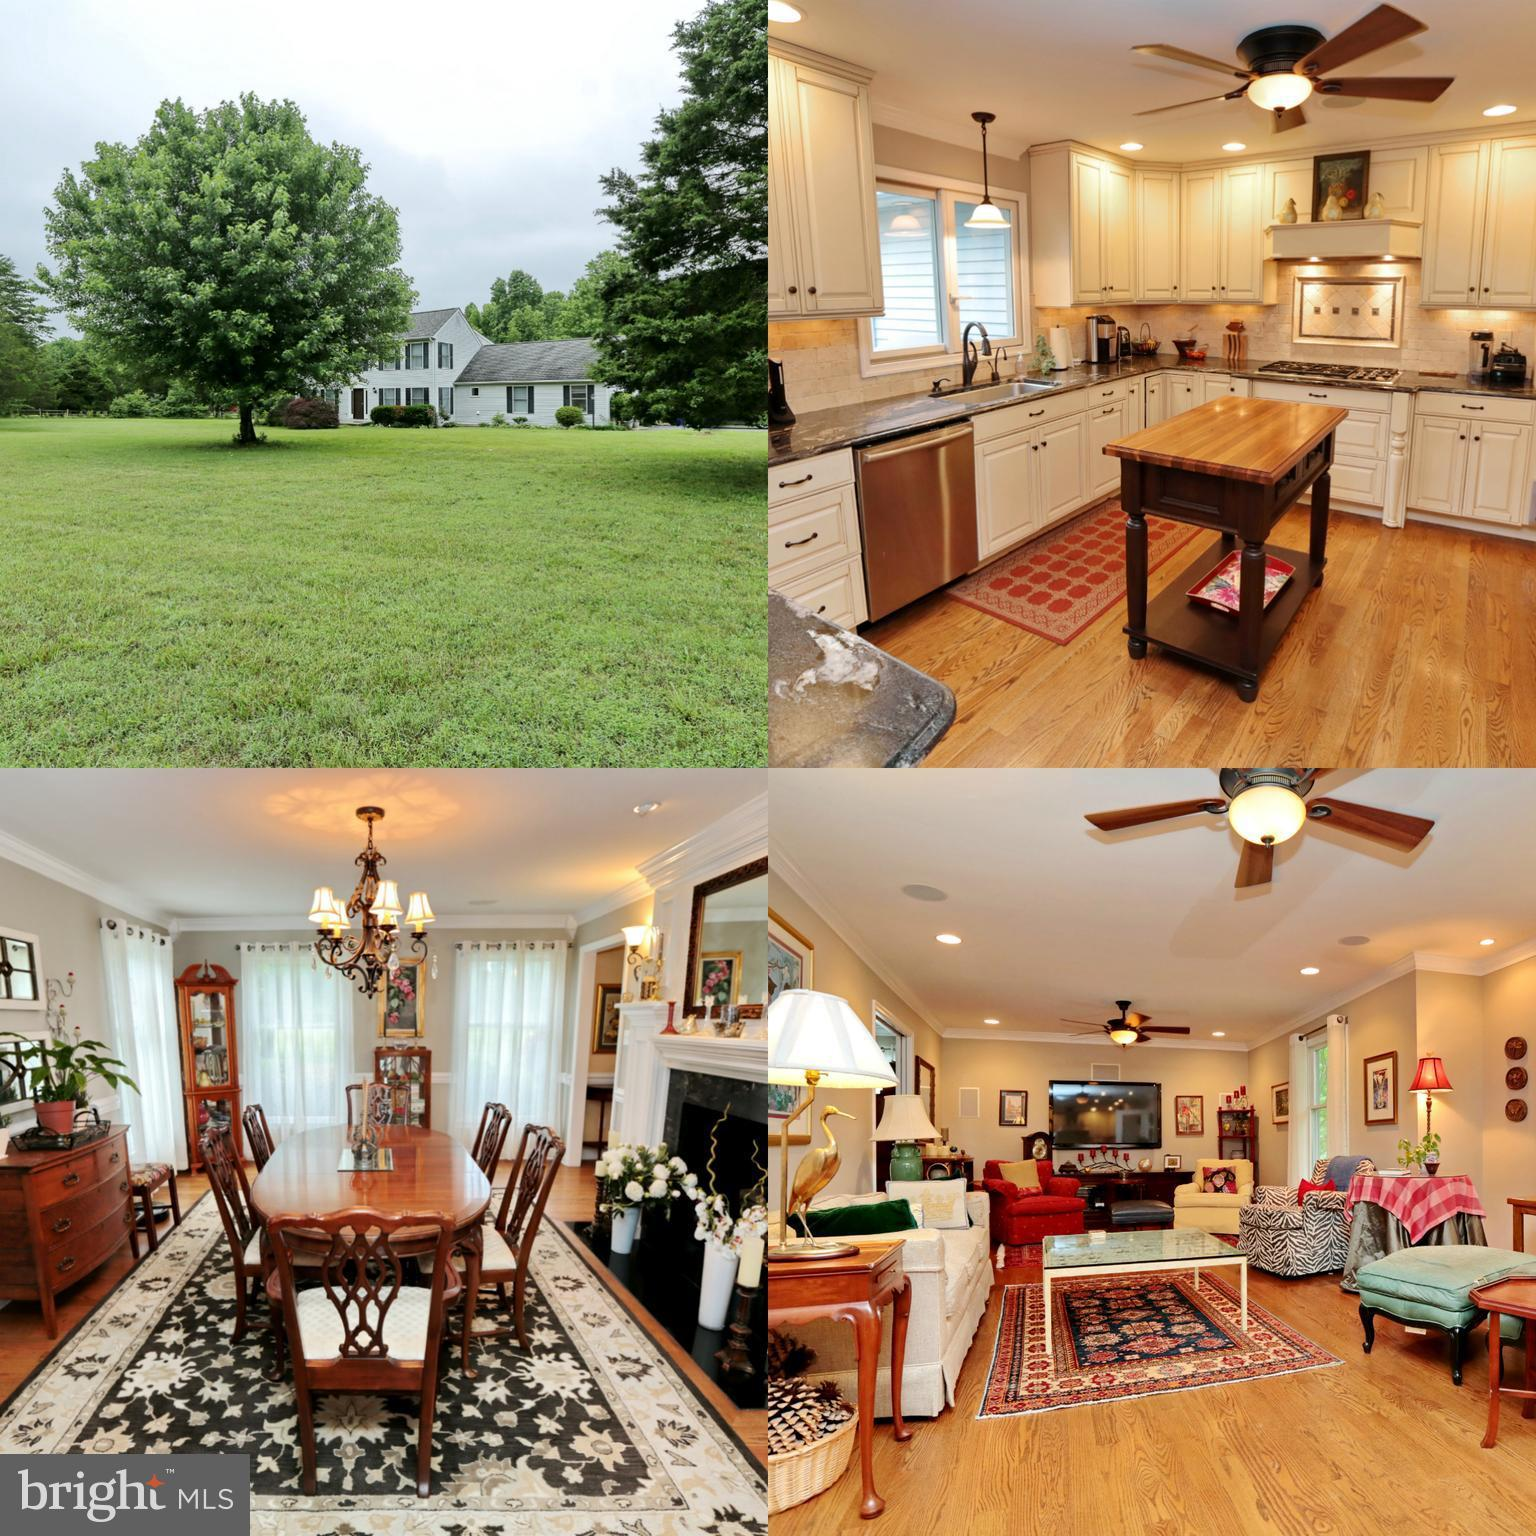 8730 WEDDING DRIVE, WELCOME, MD 20693